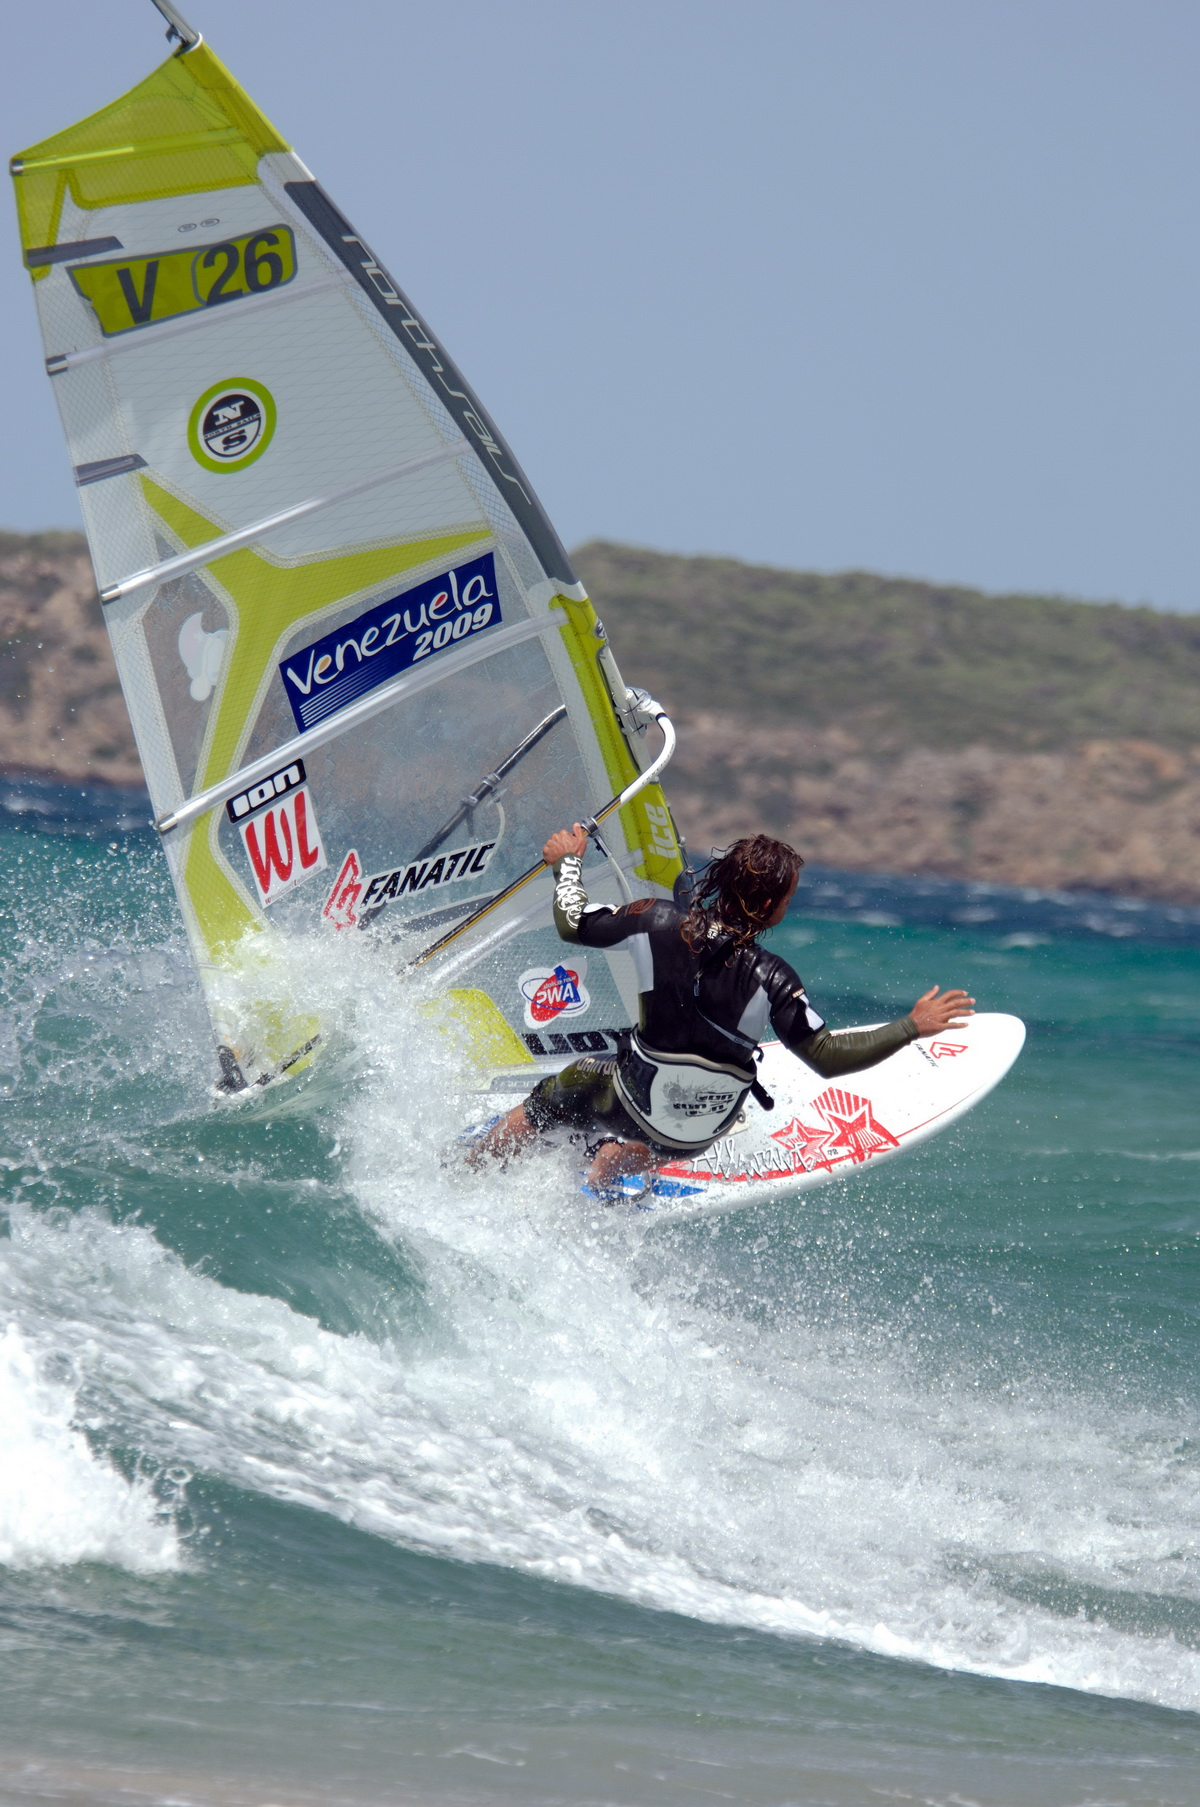 Windsurfespass in Tarifa